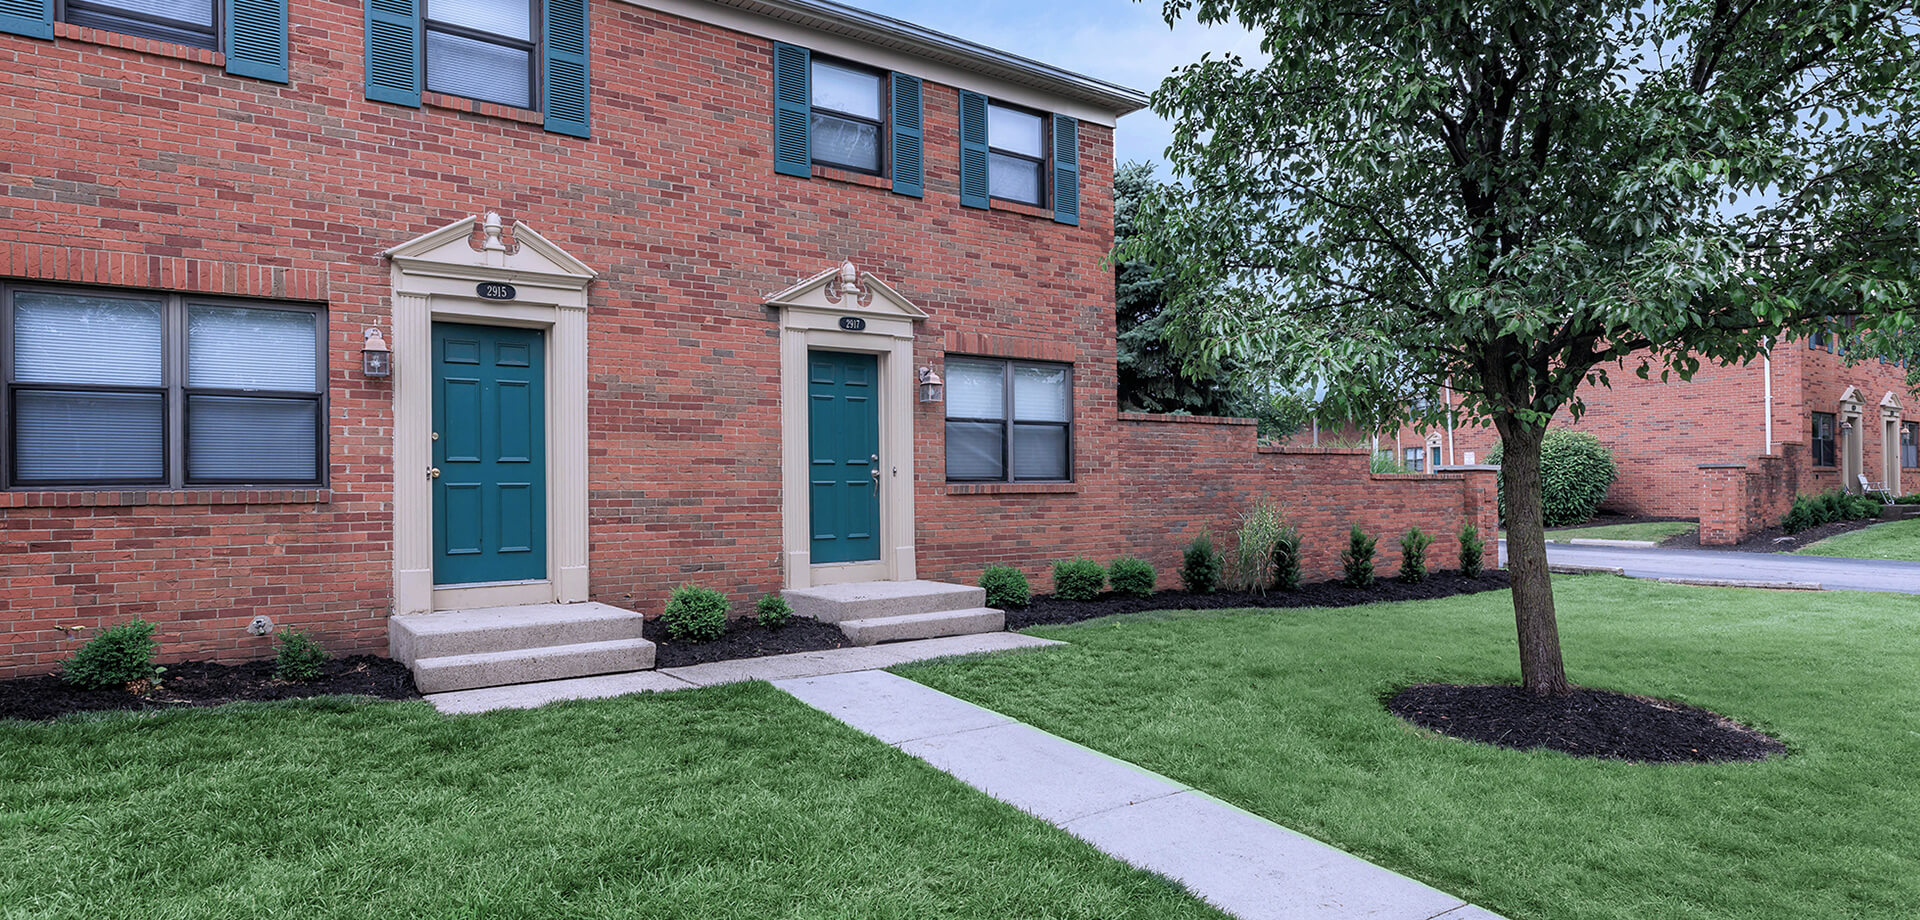 Regency Arms - Apartments for Rent in Grove City, OH